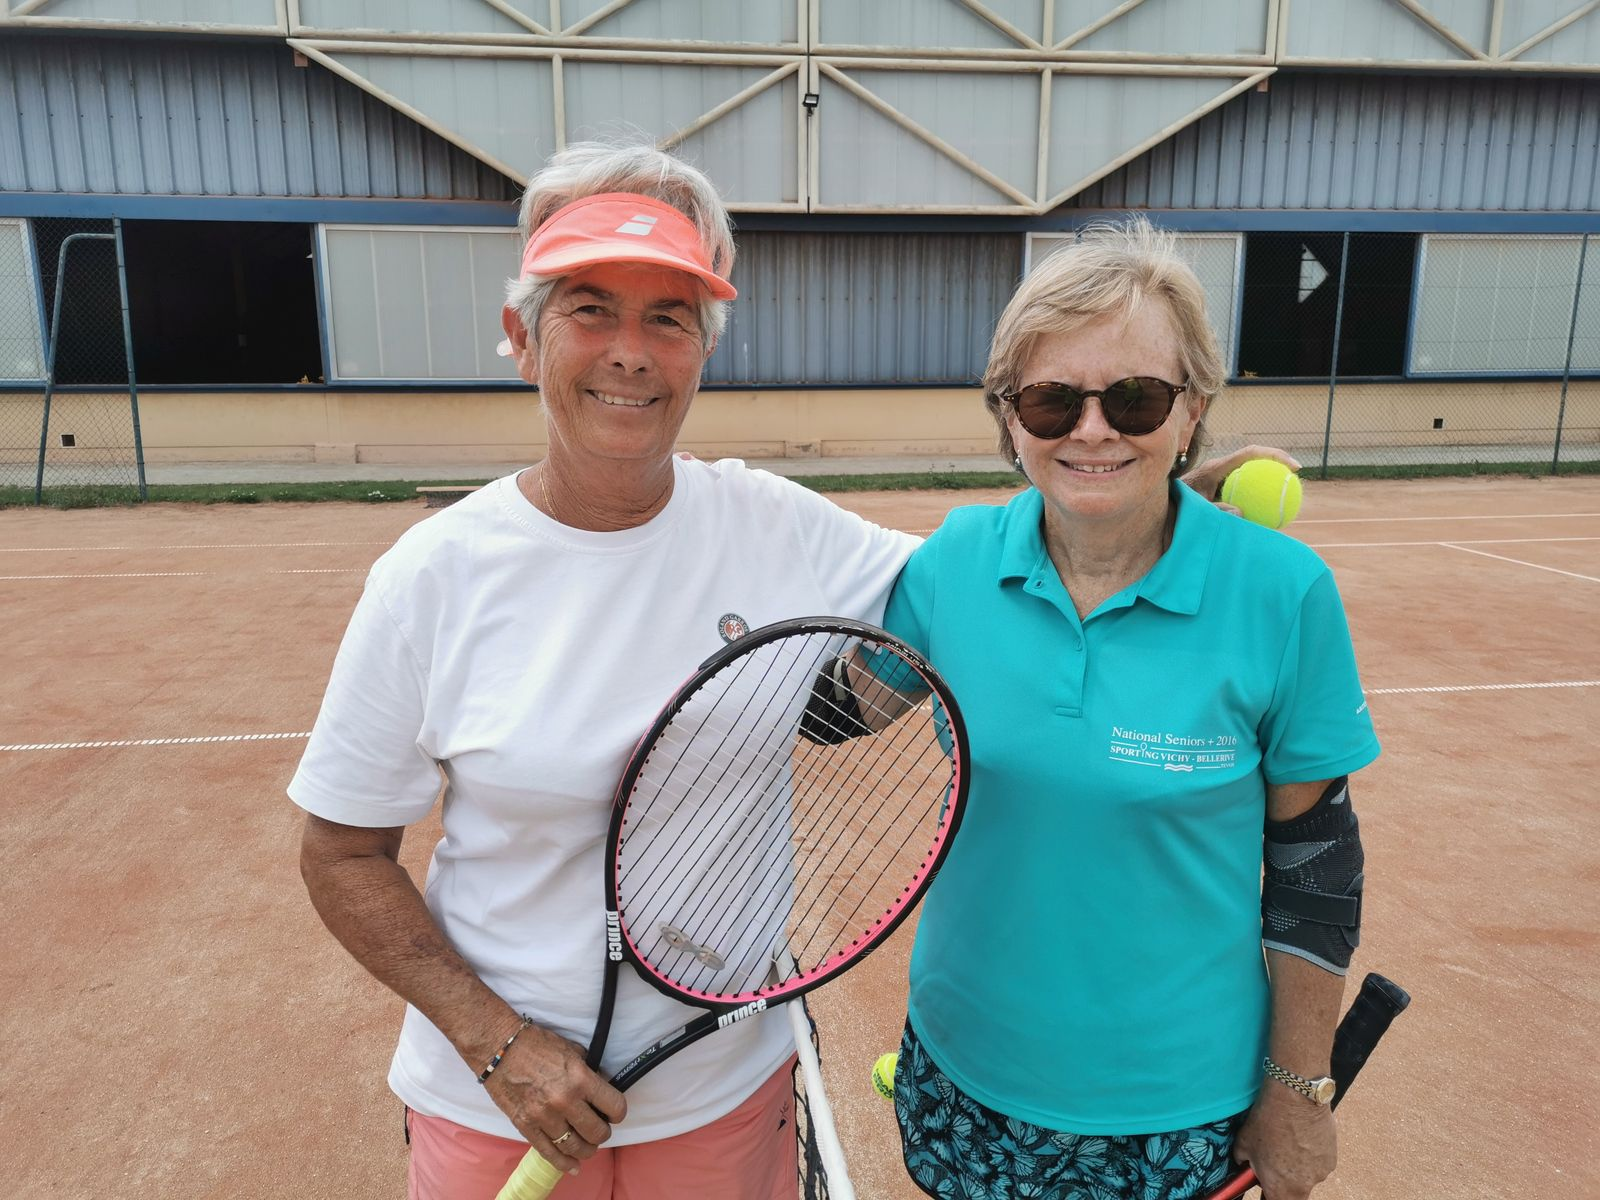 Catherine Rolland 15/3 Cabourg gagne contre Cynthia Petit 15/5 Liberty Country Club